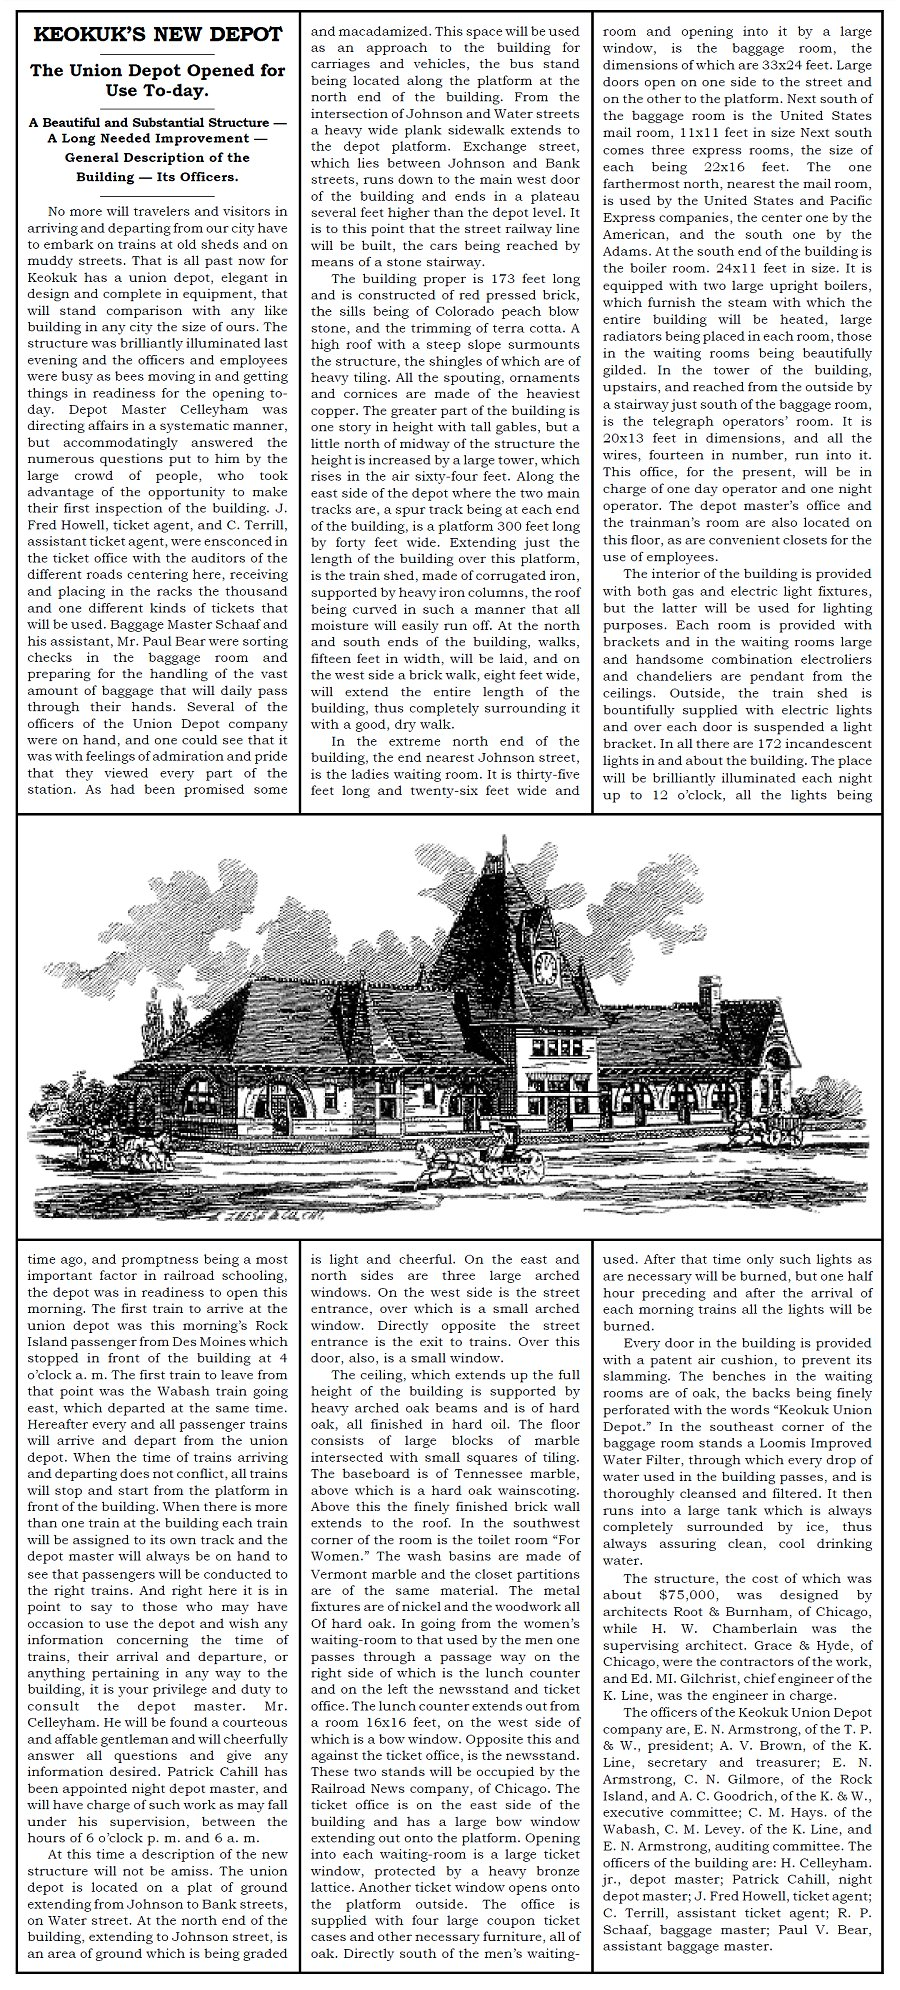 Newspaper article about newly opened Depot, 1891